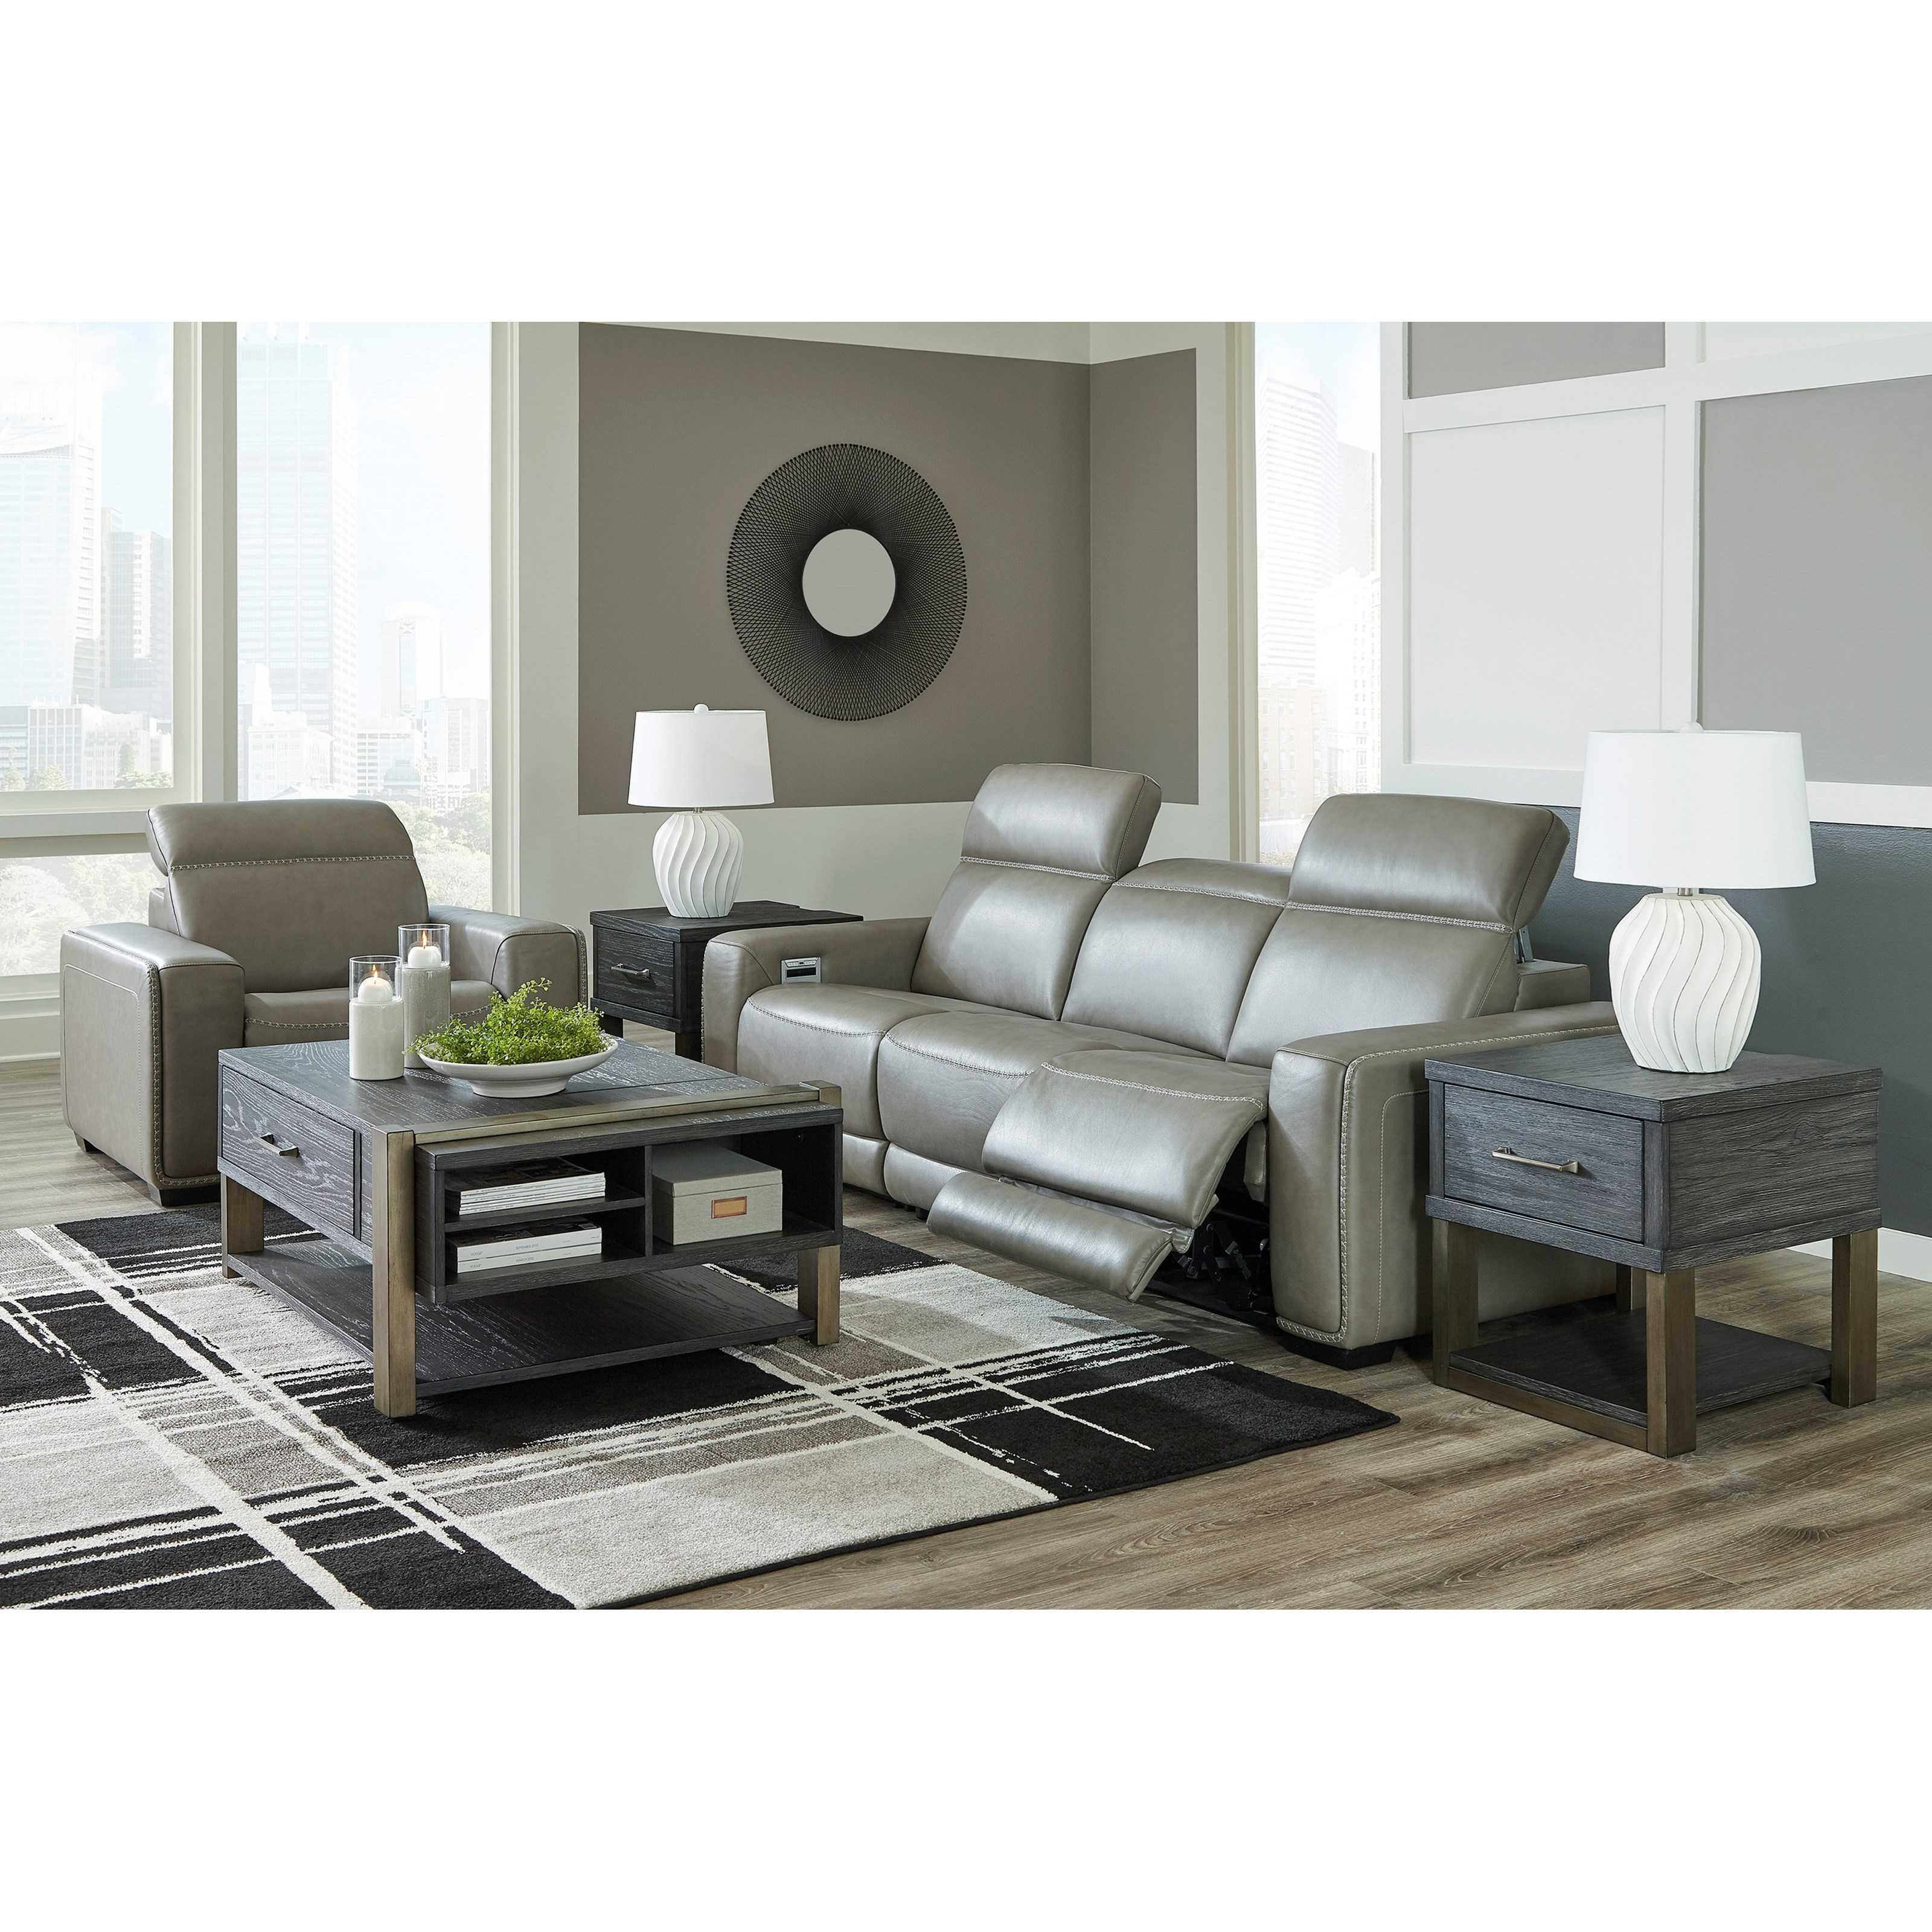 Correze Power Reclining Living Room Group by Signature Design by Ashley at Northeast Factory Direct